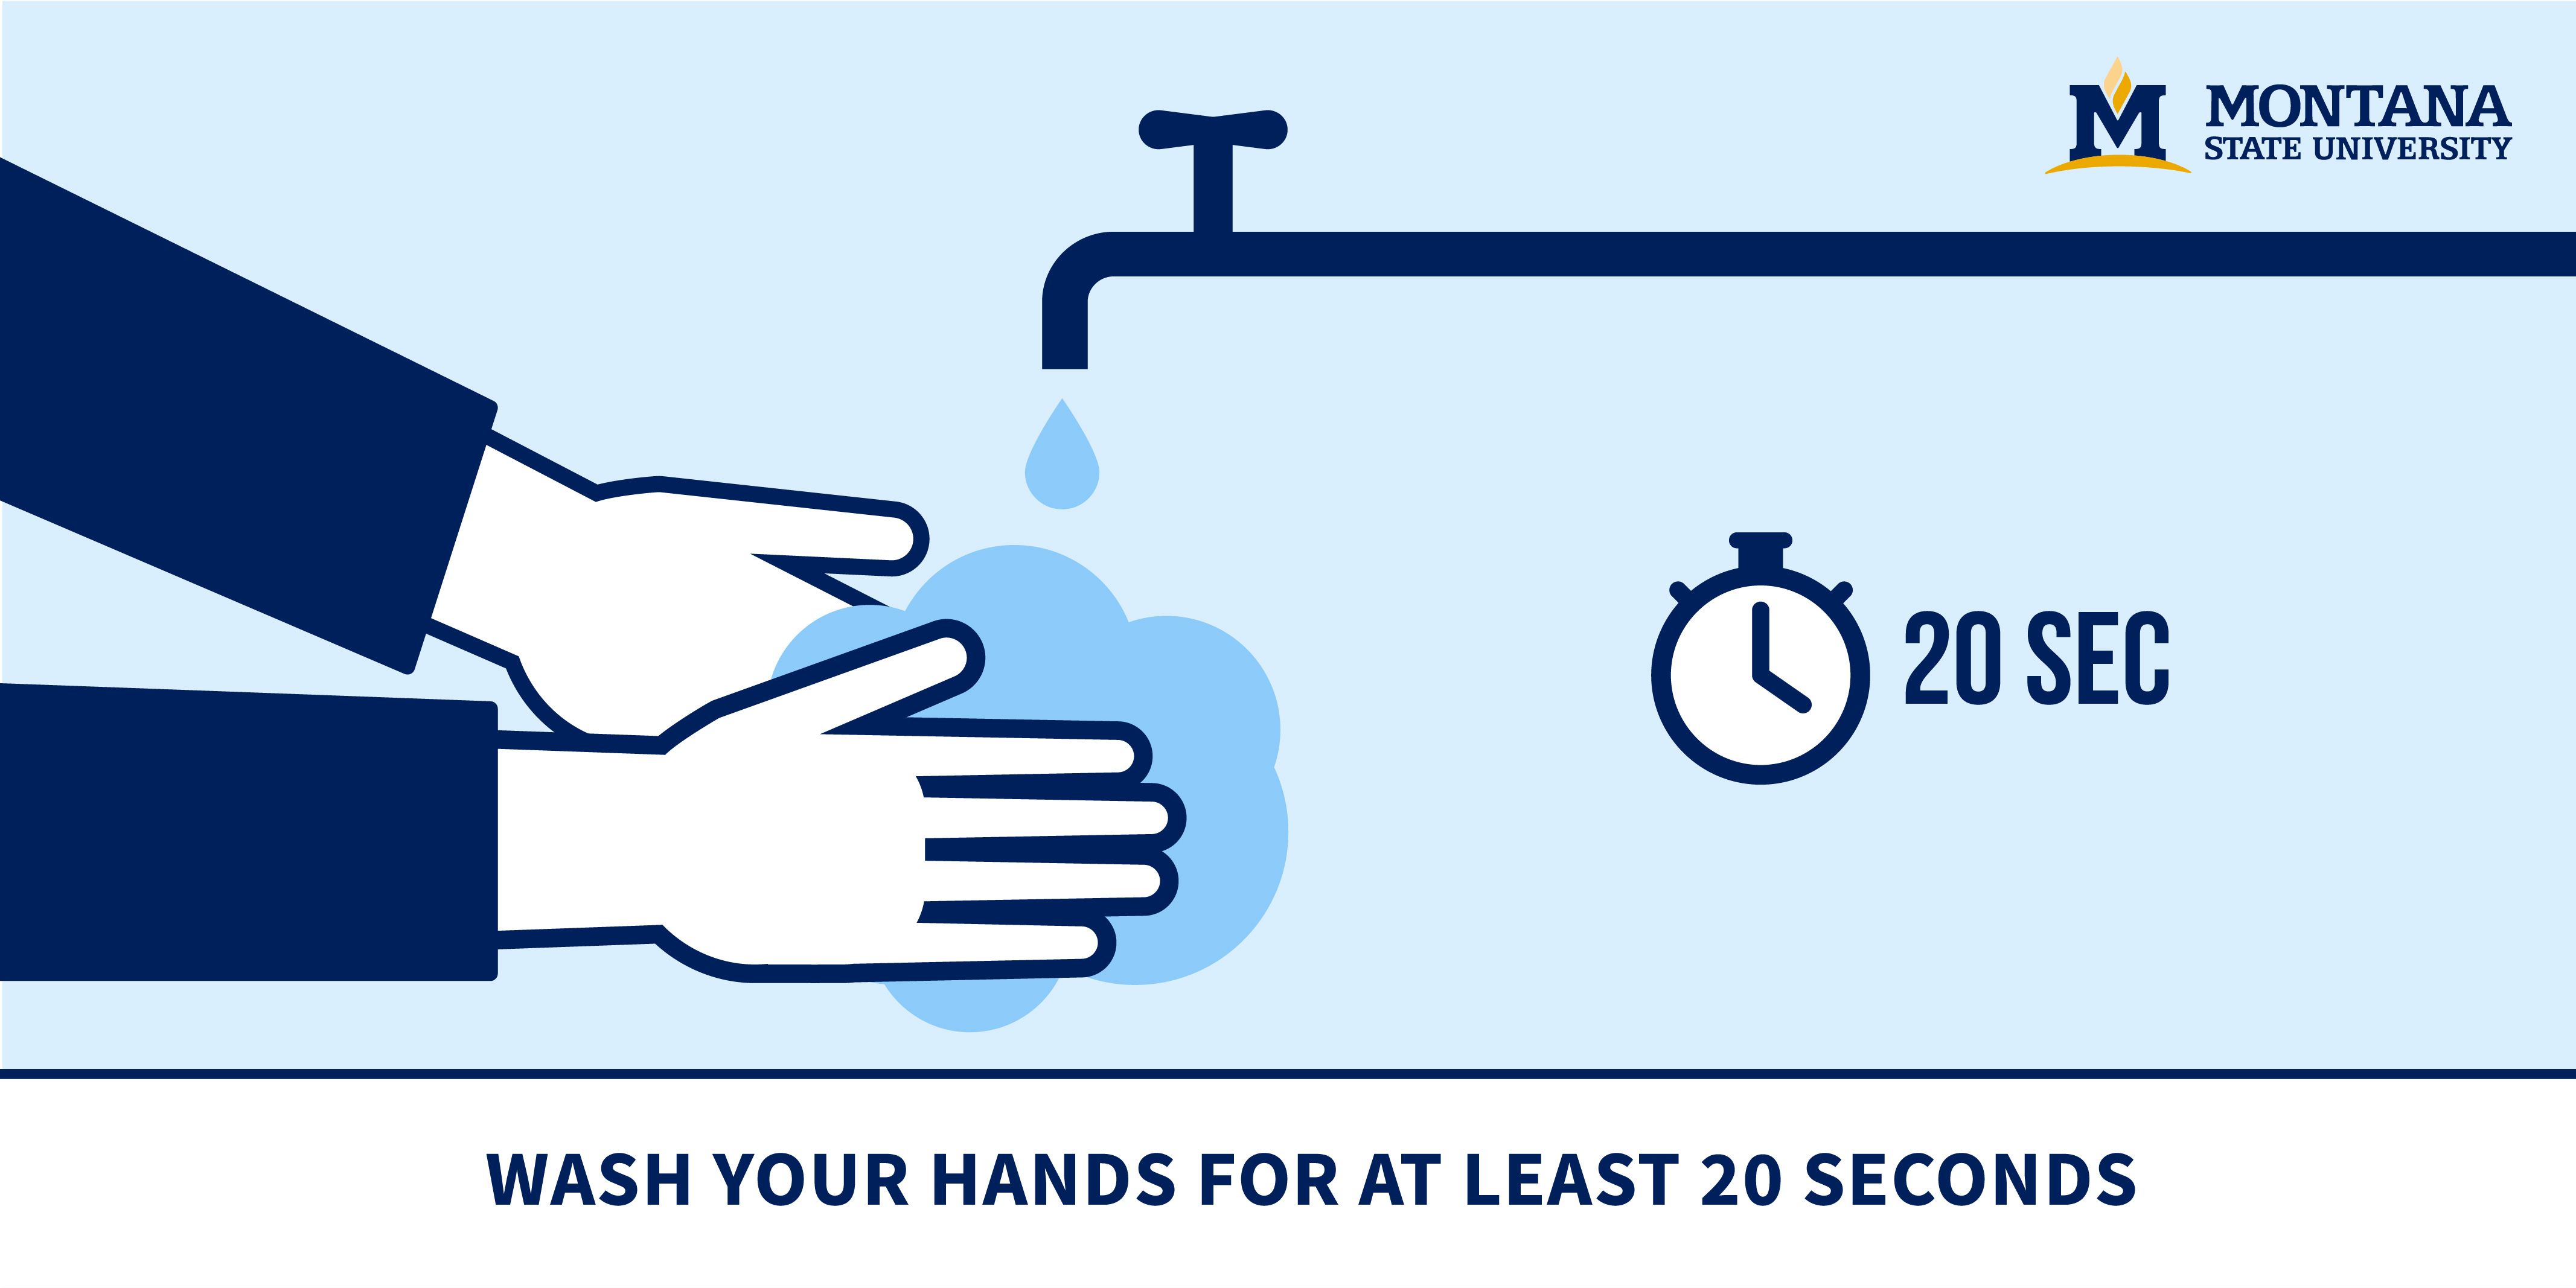 Wash Your Hands For A Minimum Of 20 Seconds